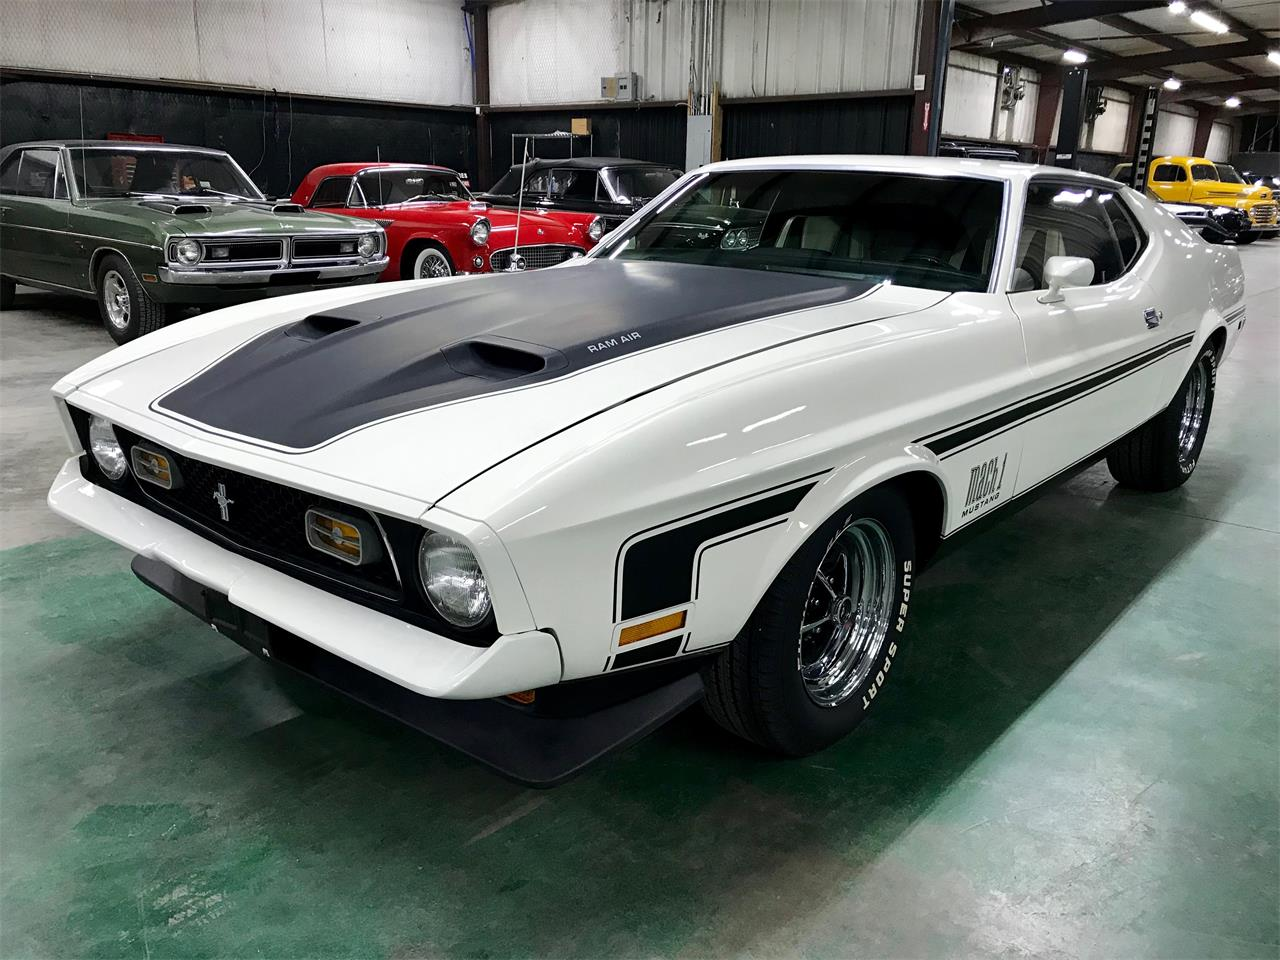 Large picture of 72 mustang mach 1 pumu